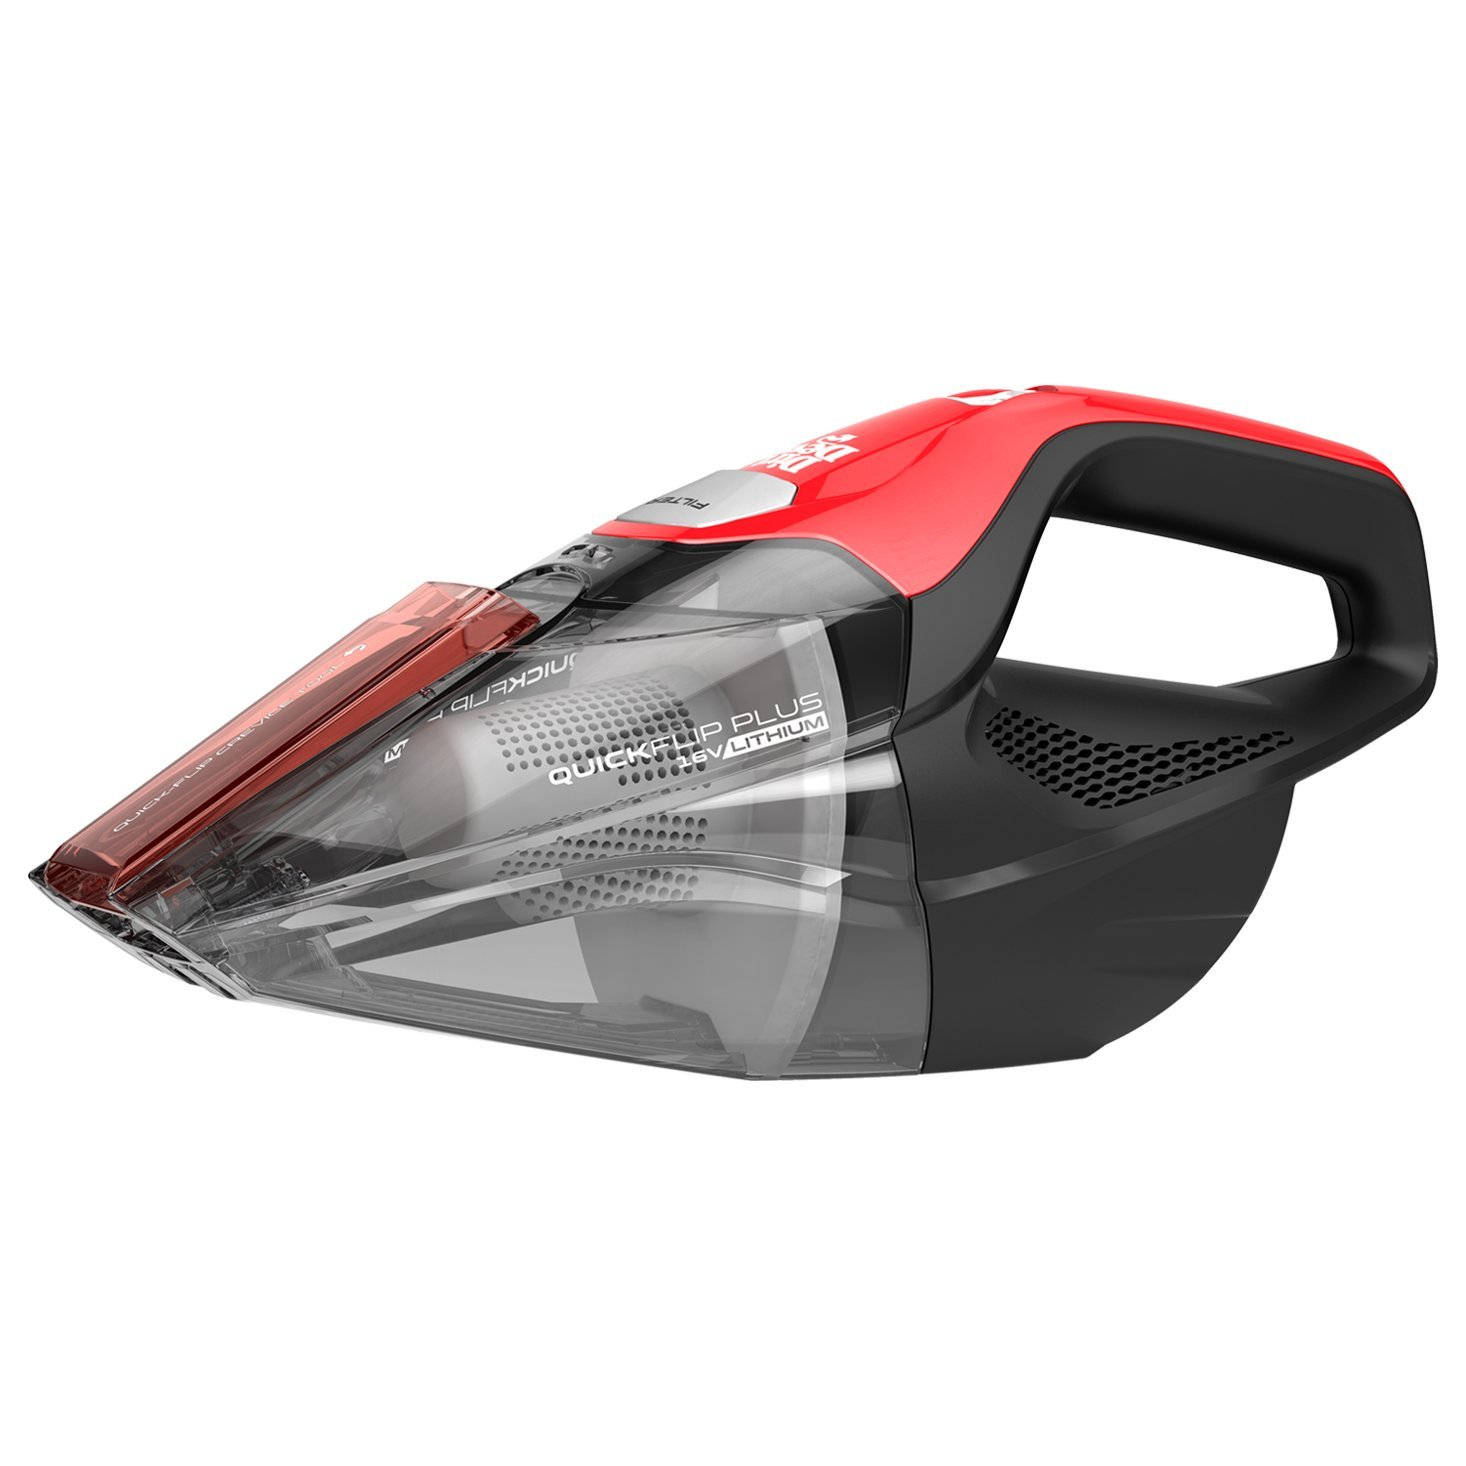 Dirt Devil Quick Flip Plus Cordless 16 Volt Lithium Ion Bagless Handheld Vacuum